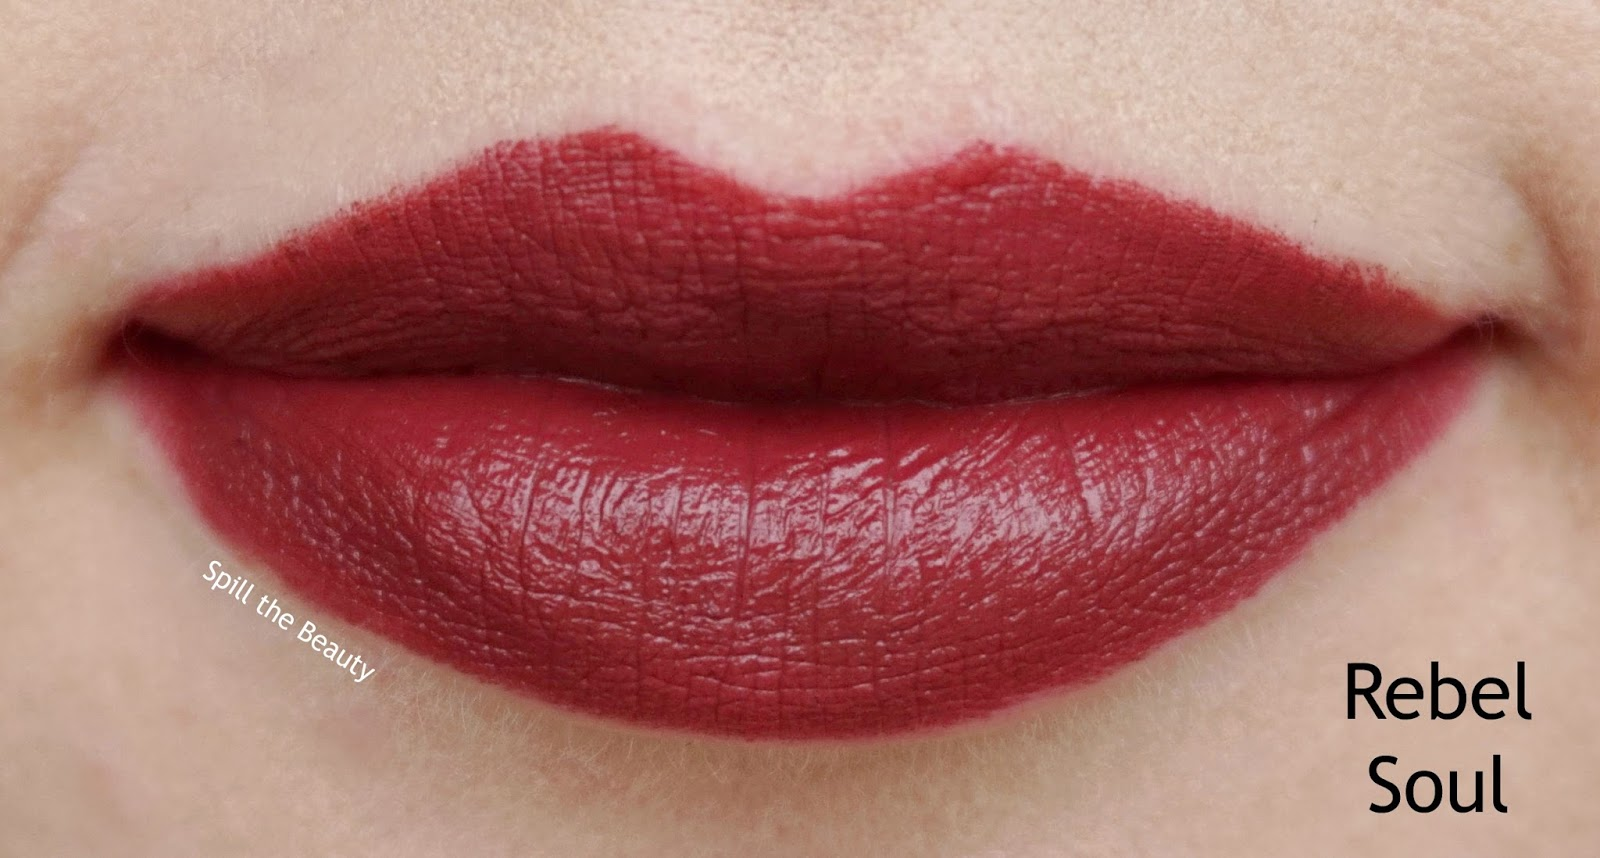 nyx pin up pout lipstick review swatches rebel soul